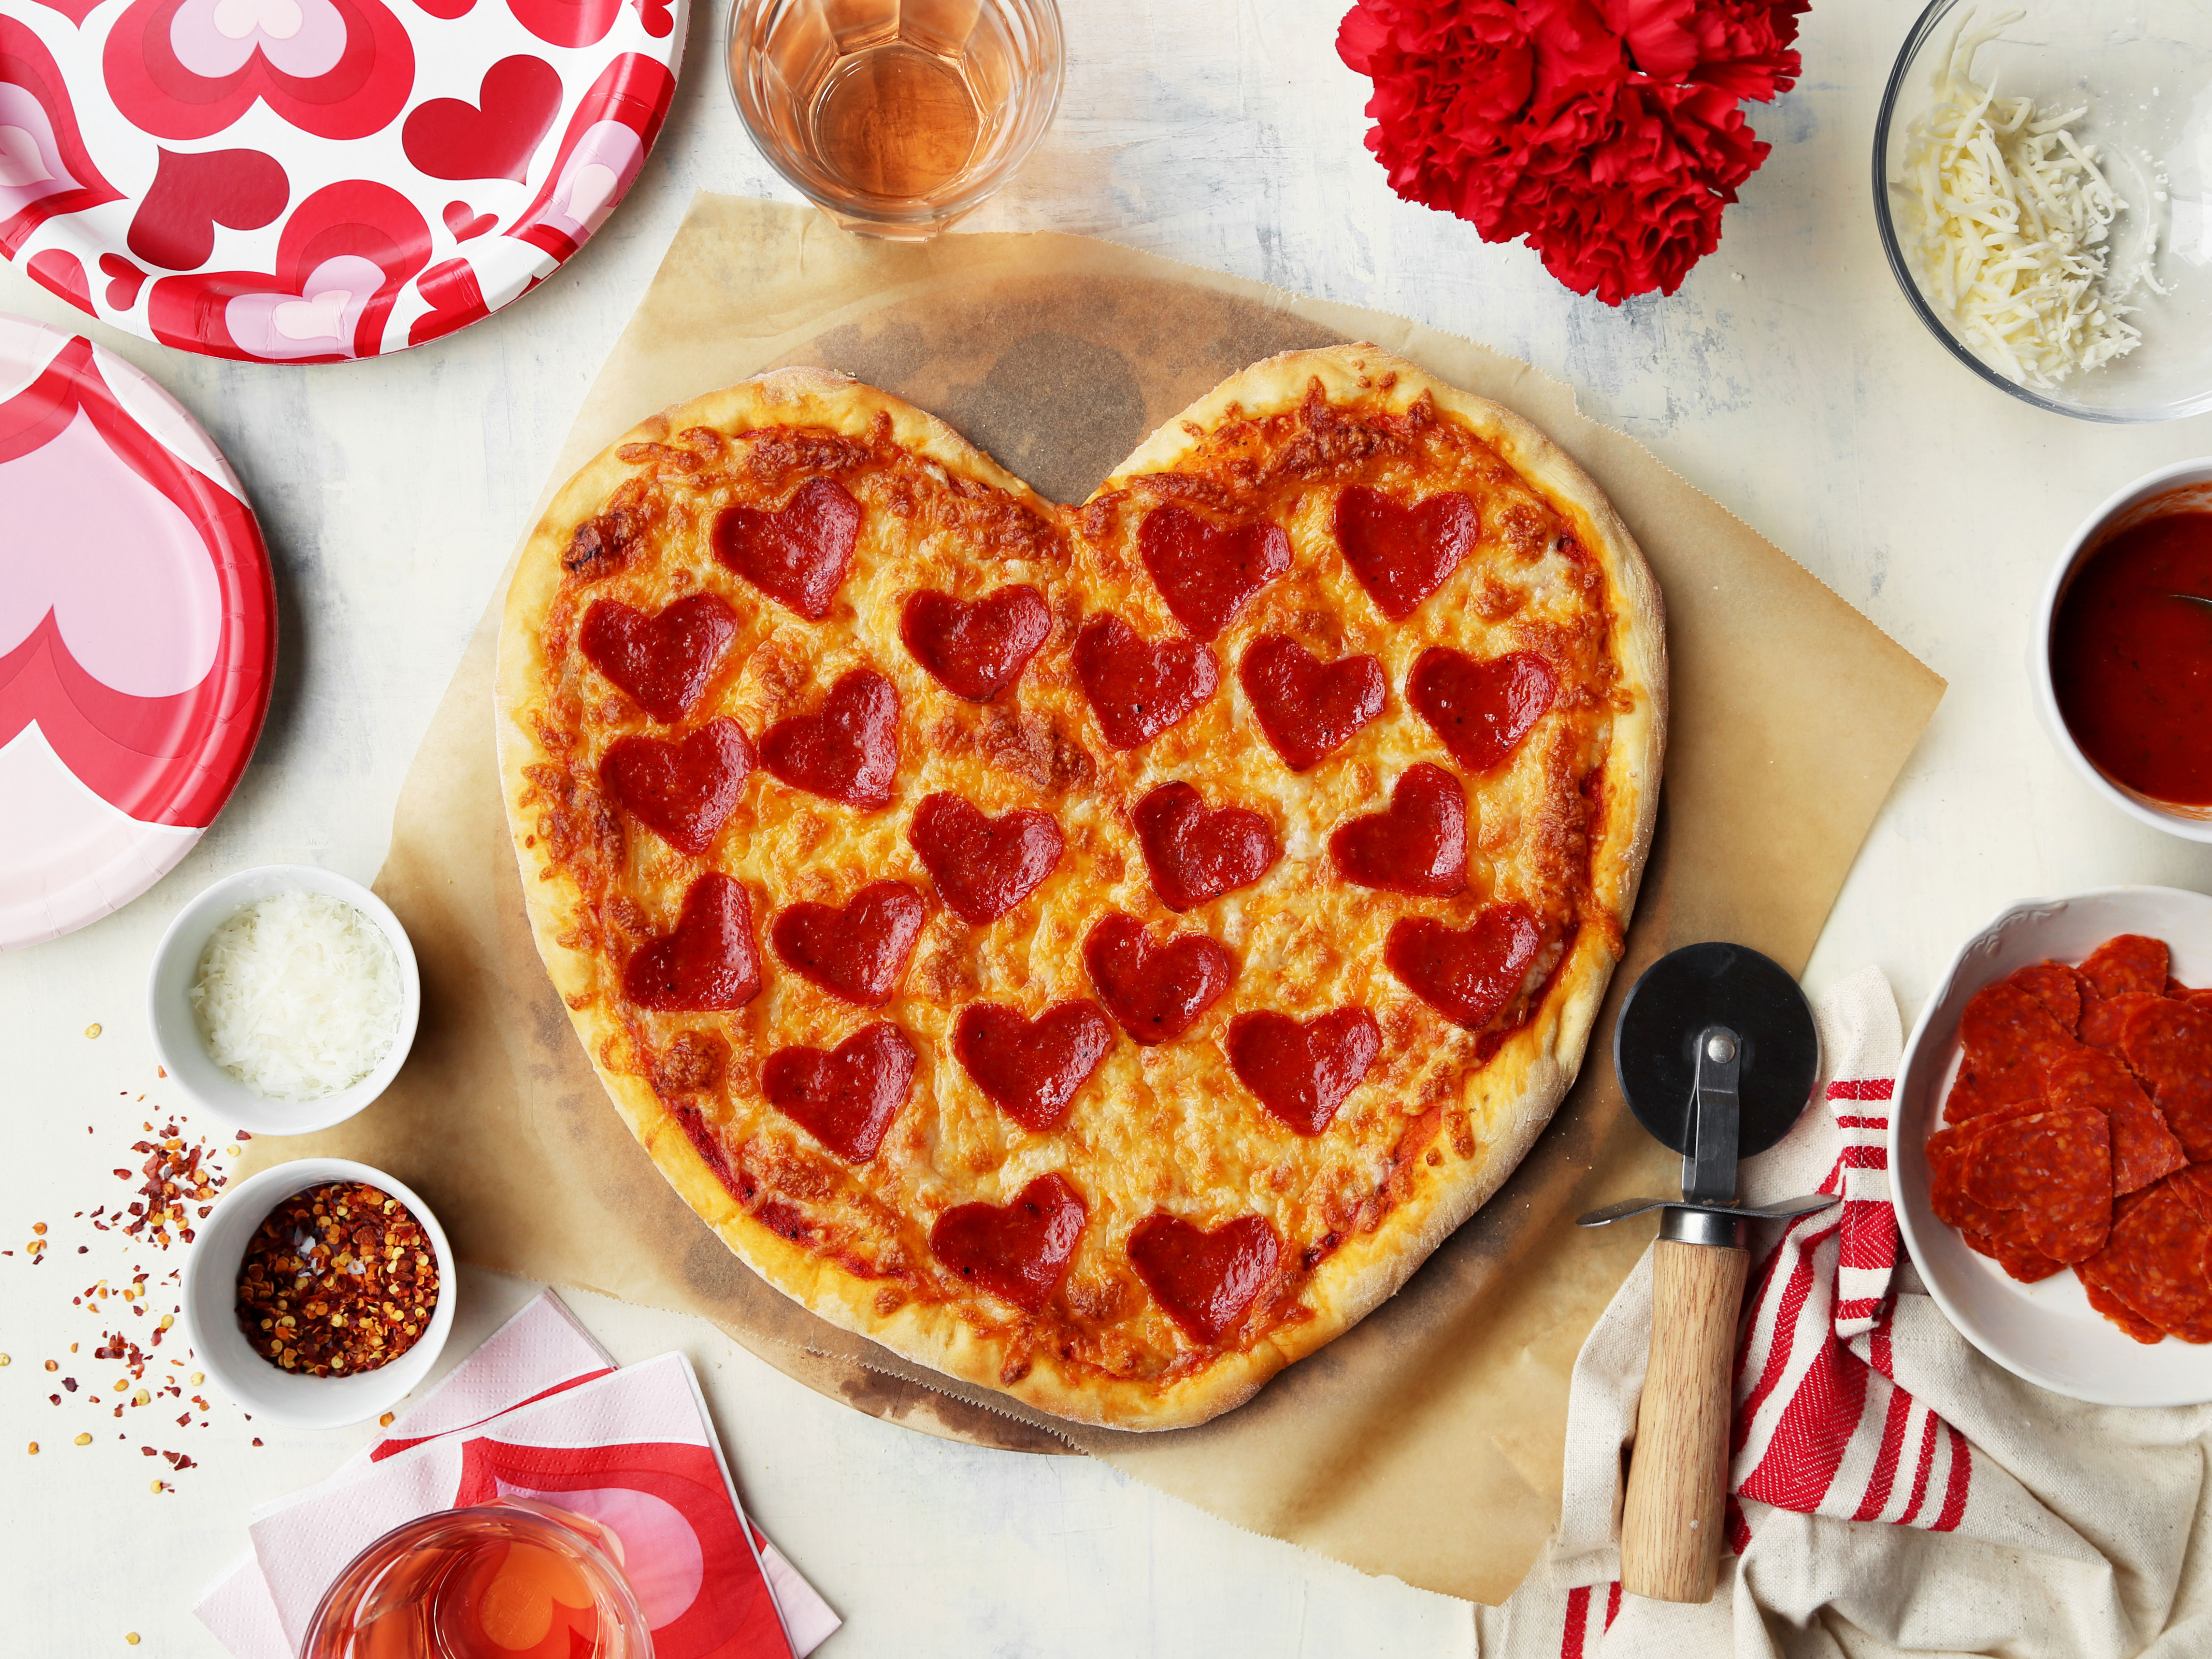 Valentines Day: Recipes, Tips, Ideas And More - Food